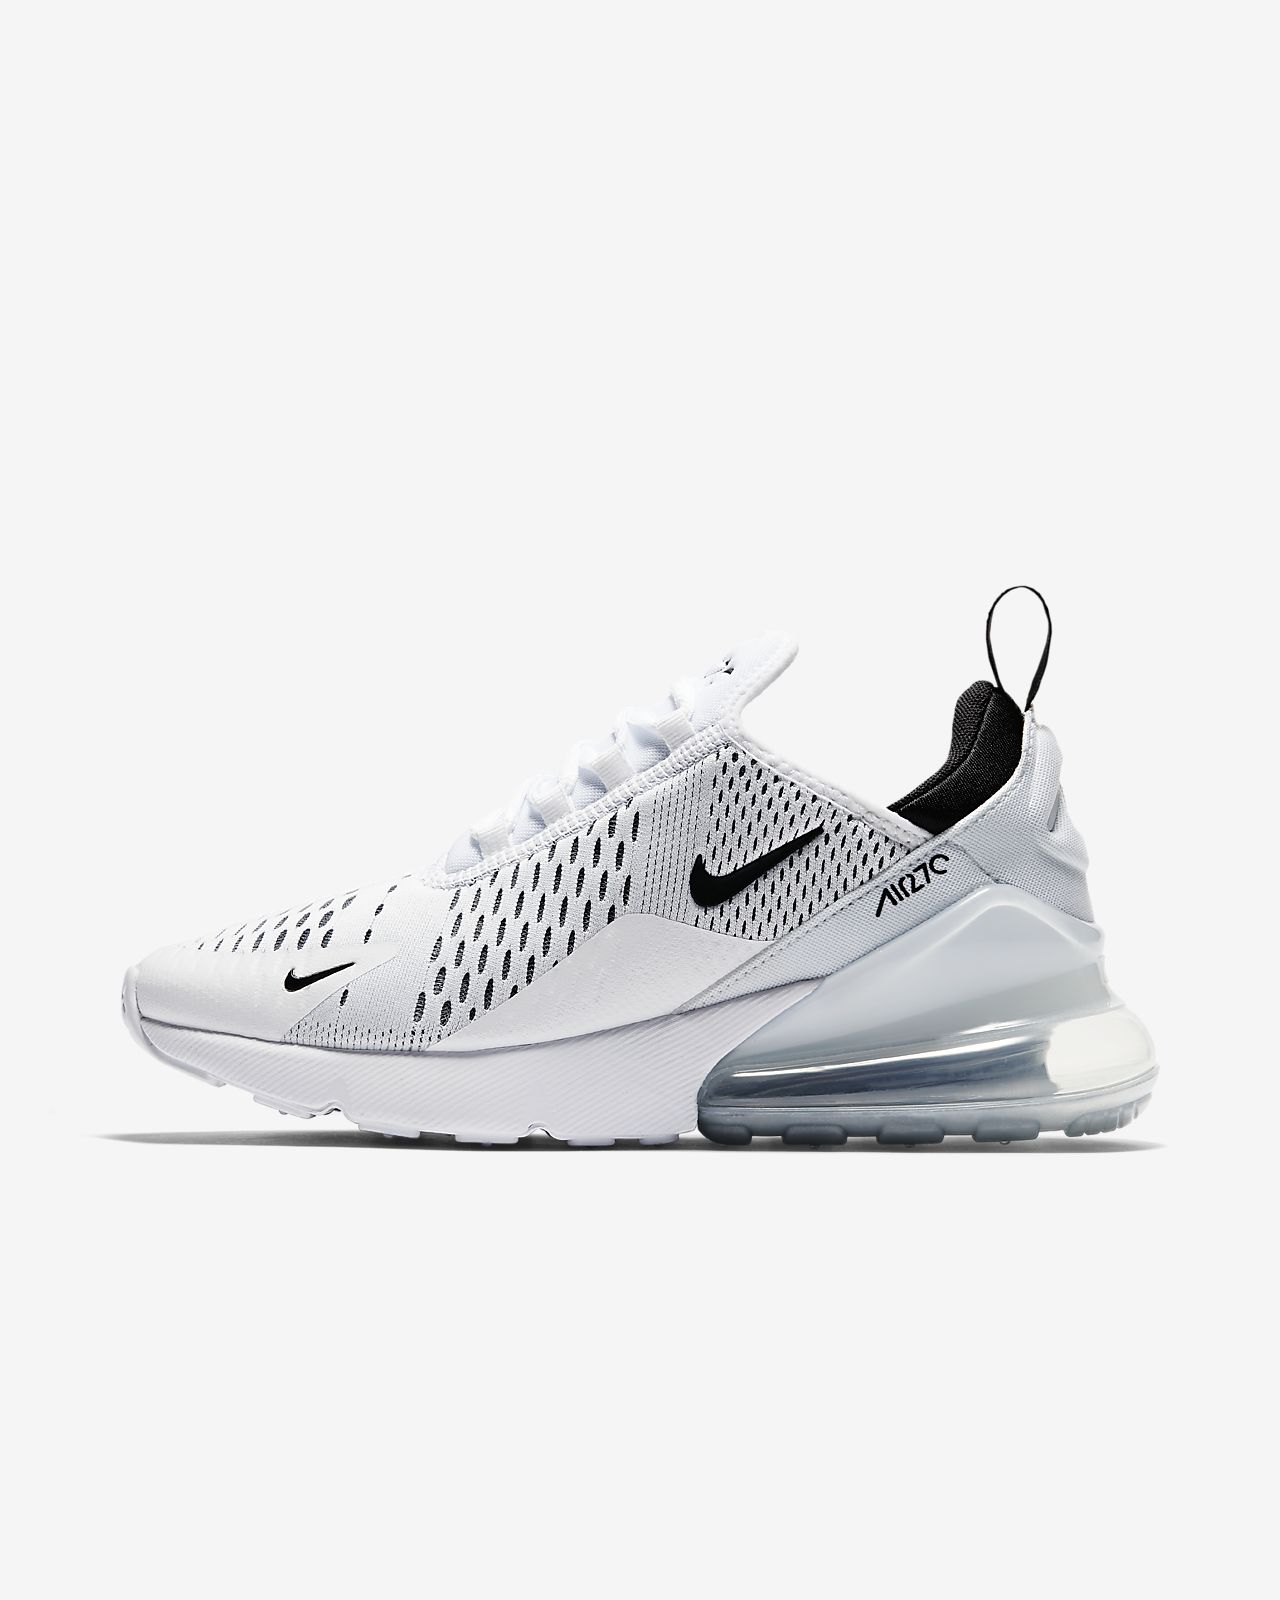 Nike baskets Air Max 270 femmes